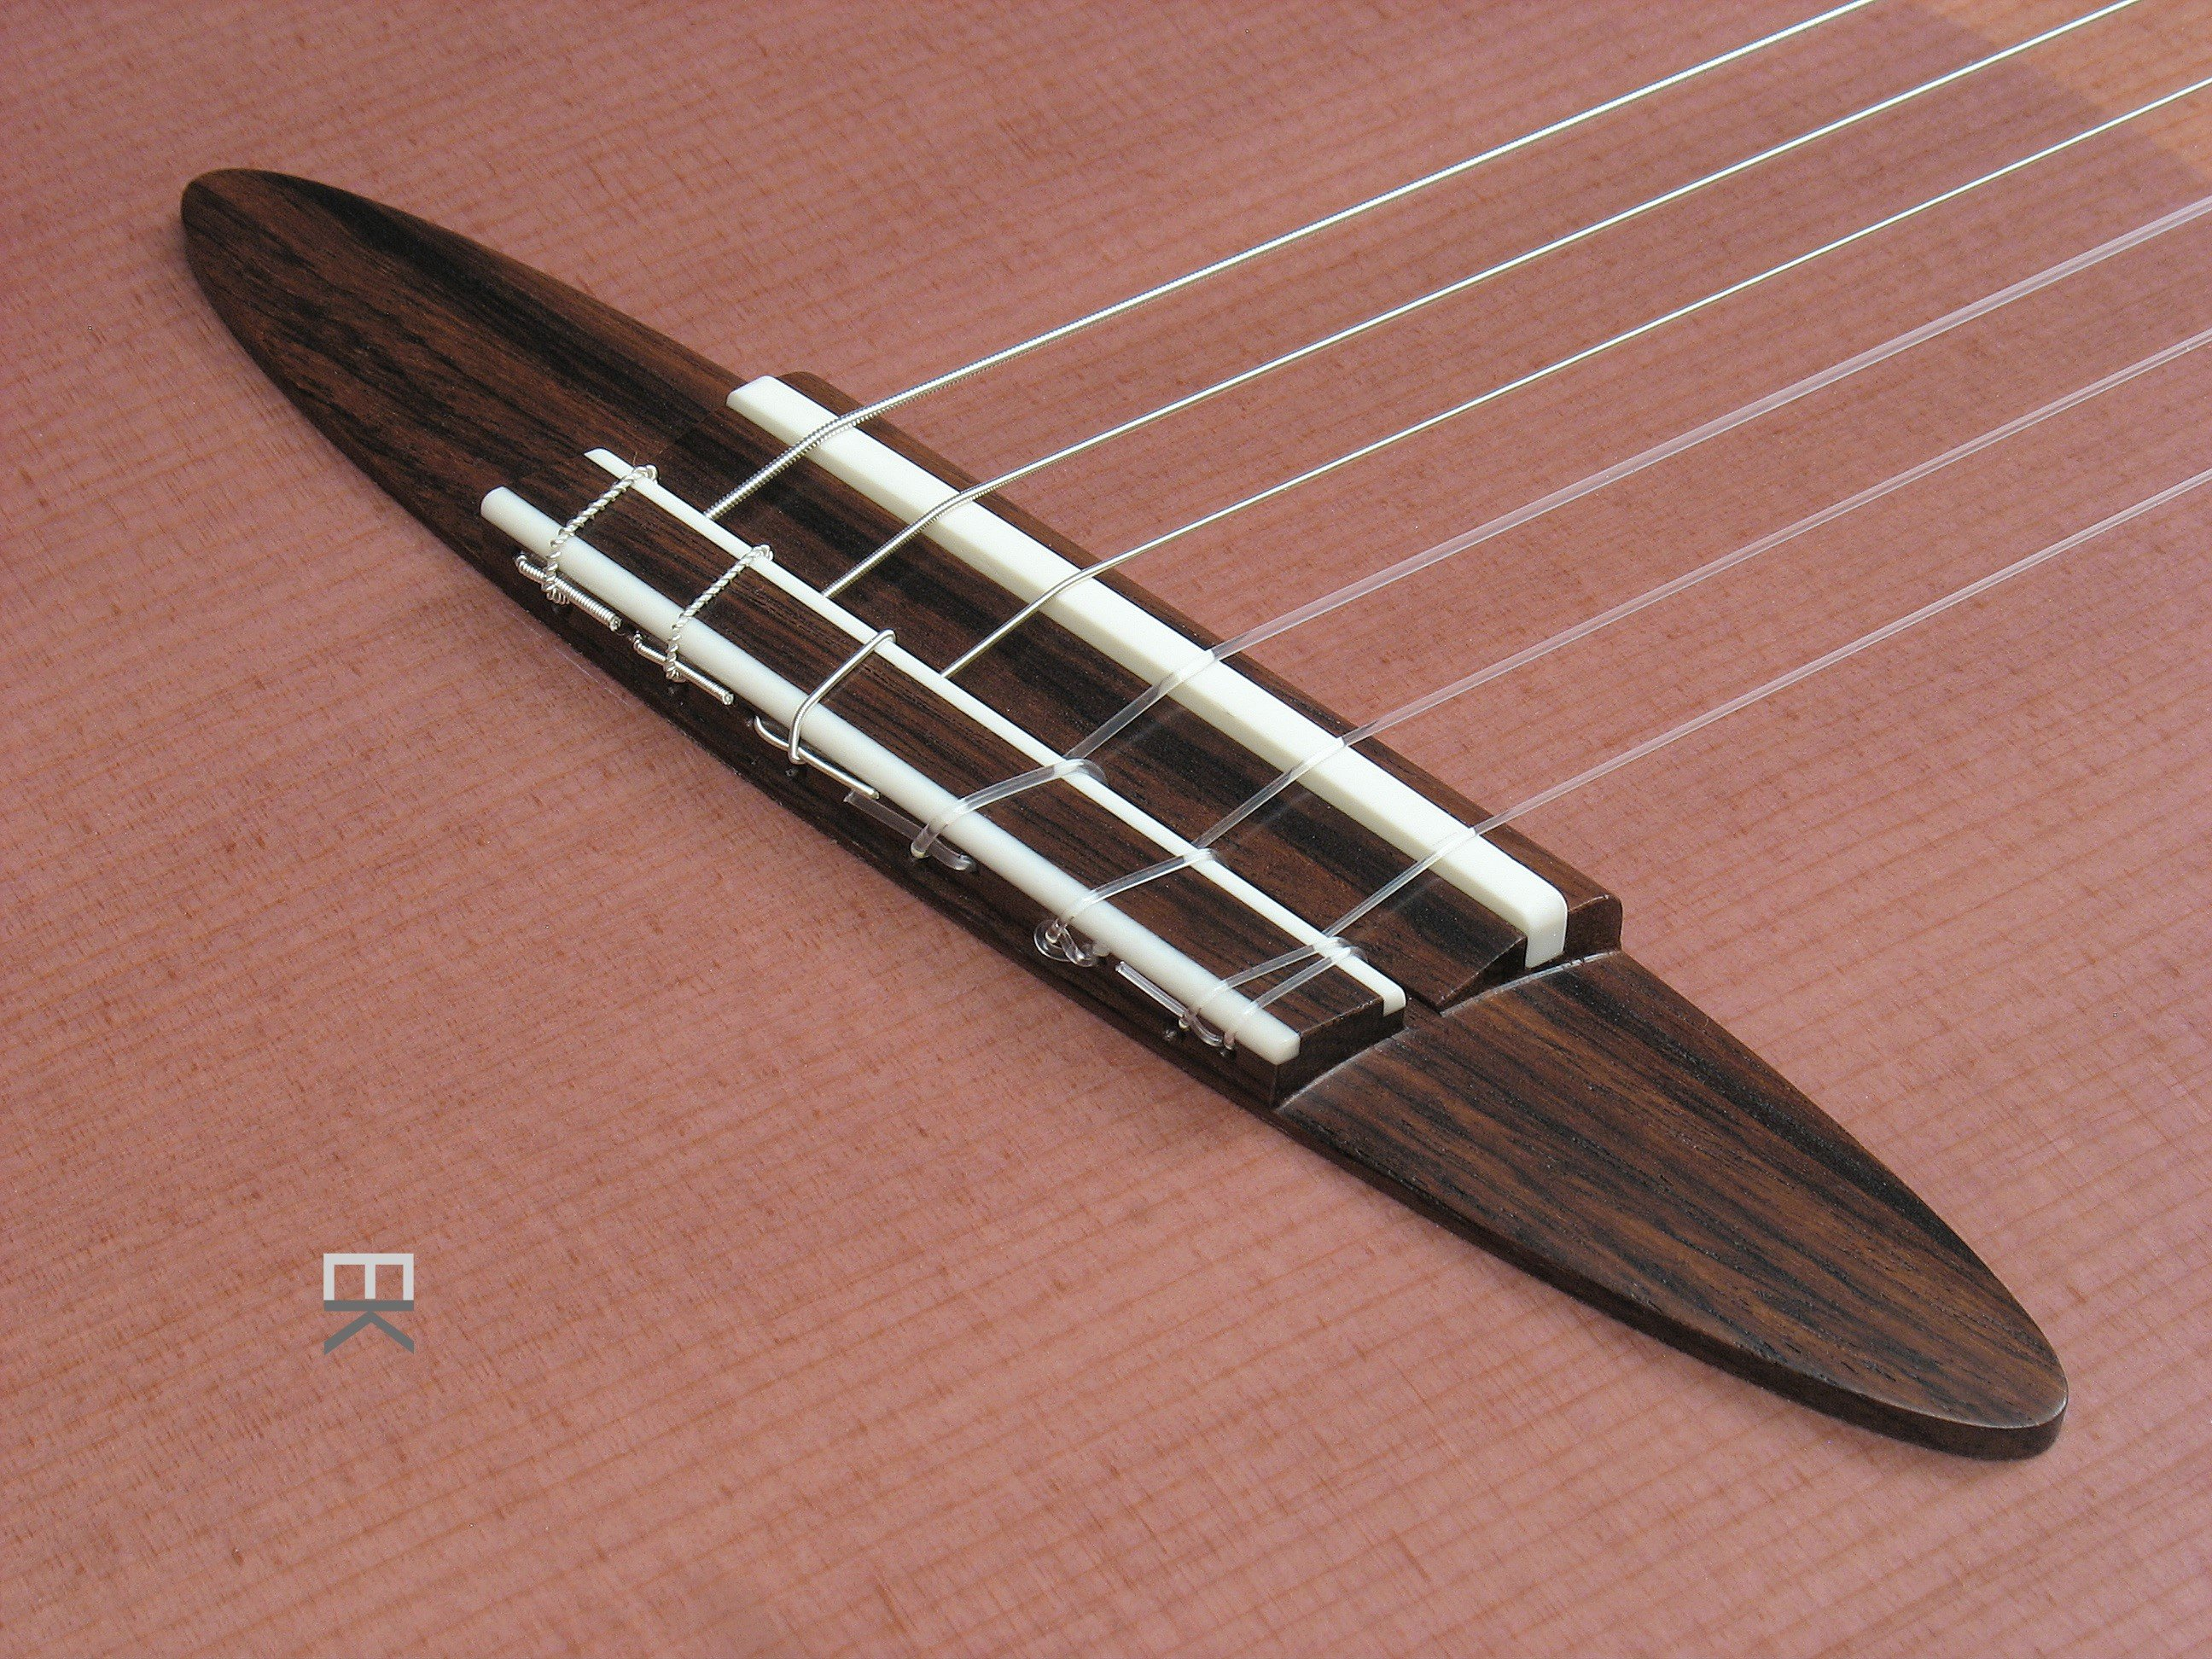 Rosewood bridge with twelve hole tie block